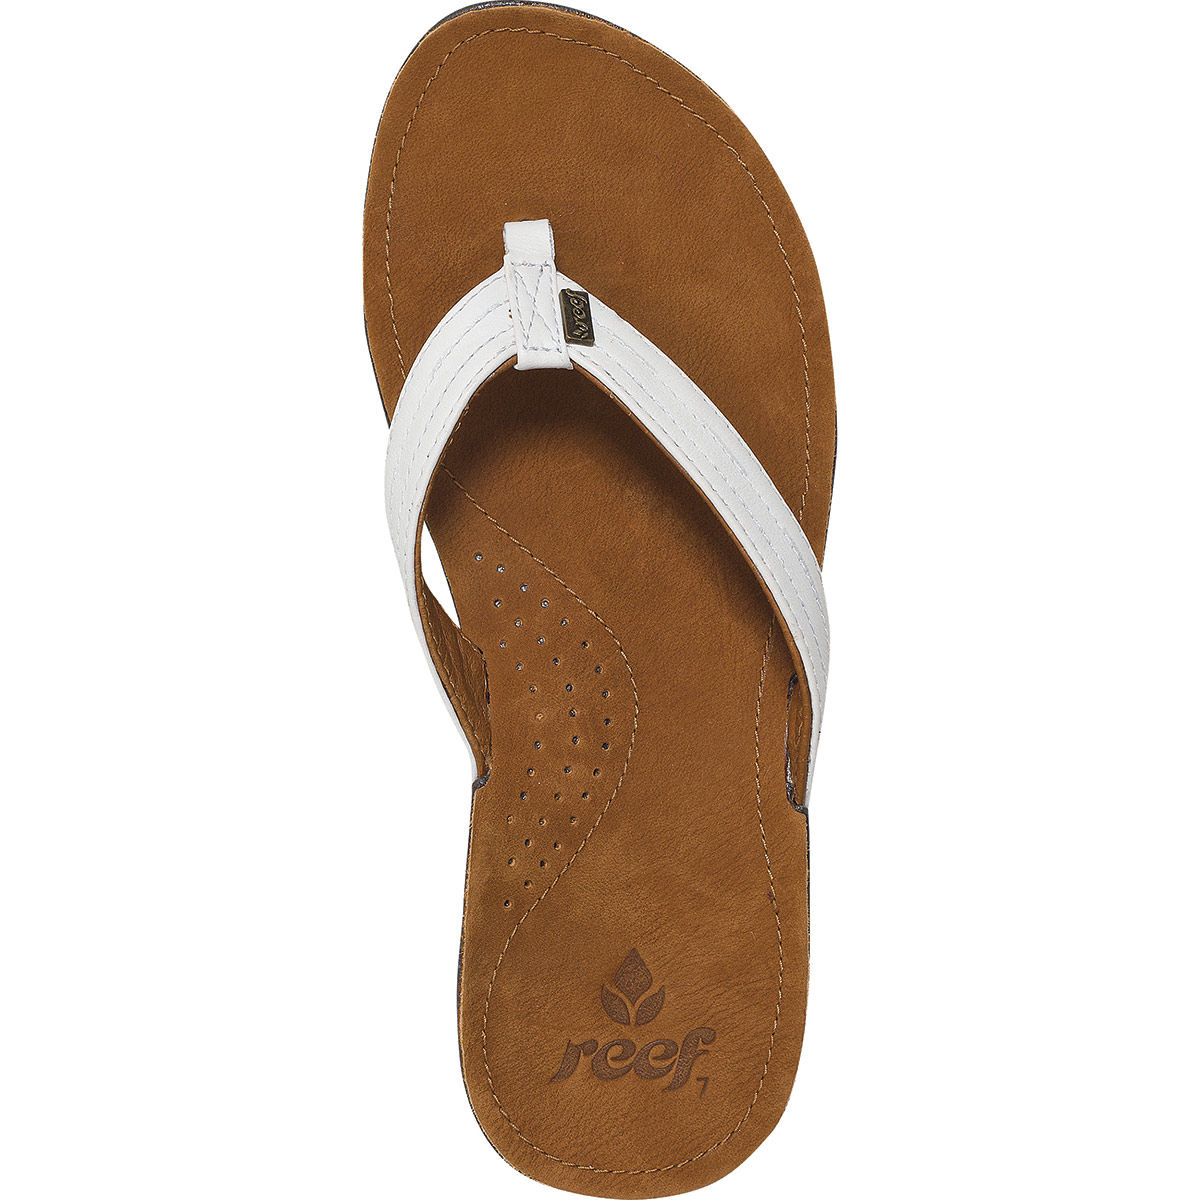 photo: Reef Miss J-Bay Sandal footwear product